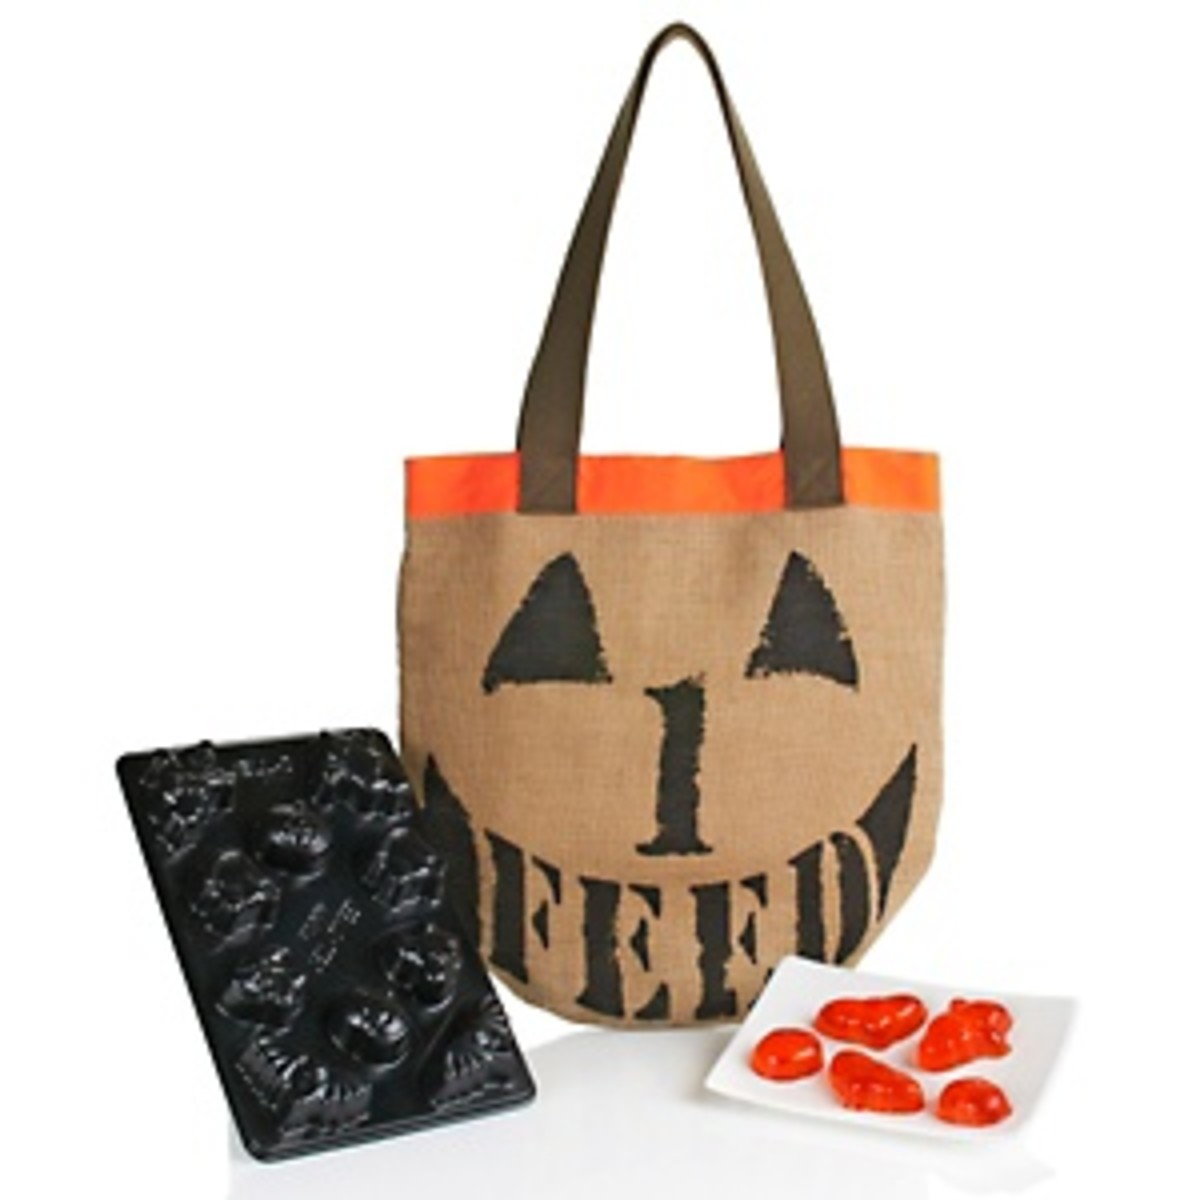 feed-trick-or-treat-bag-to-benefit-unicef-with-kraft-halloween-jello-mold~148743